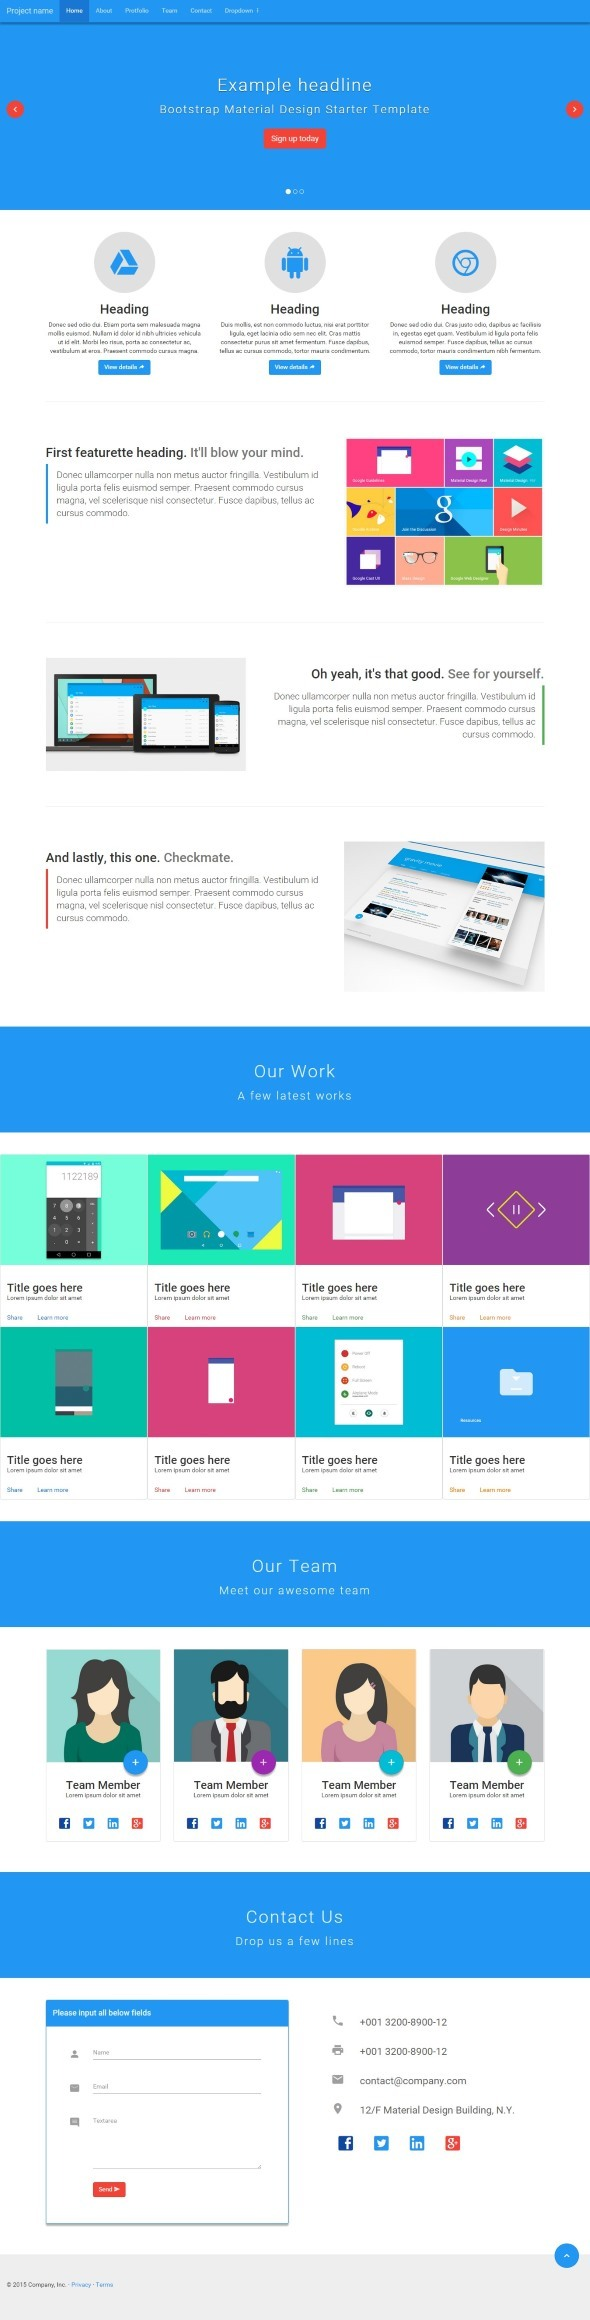 BMD - Bootstrap + Material Design - 9